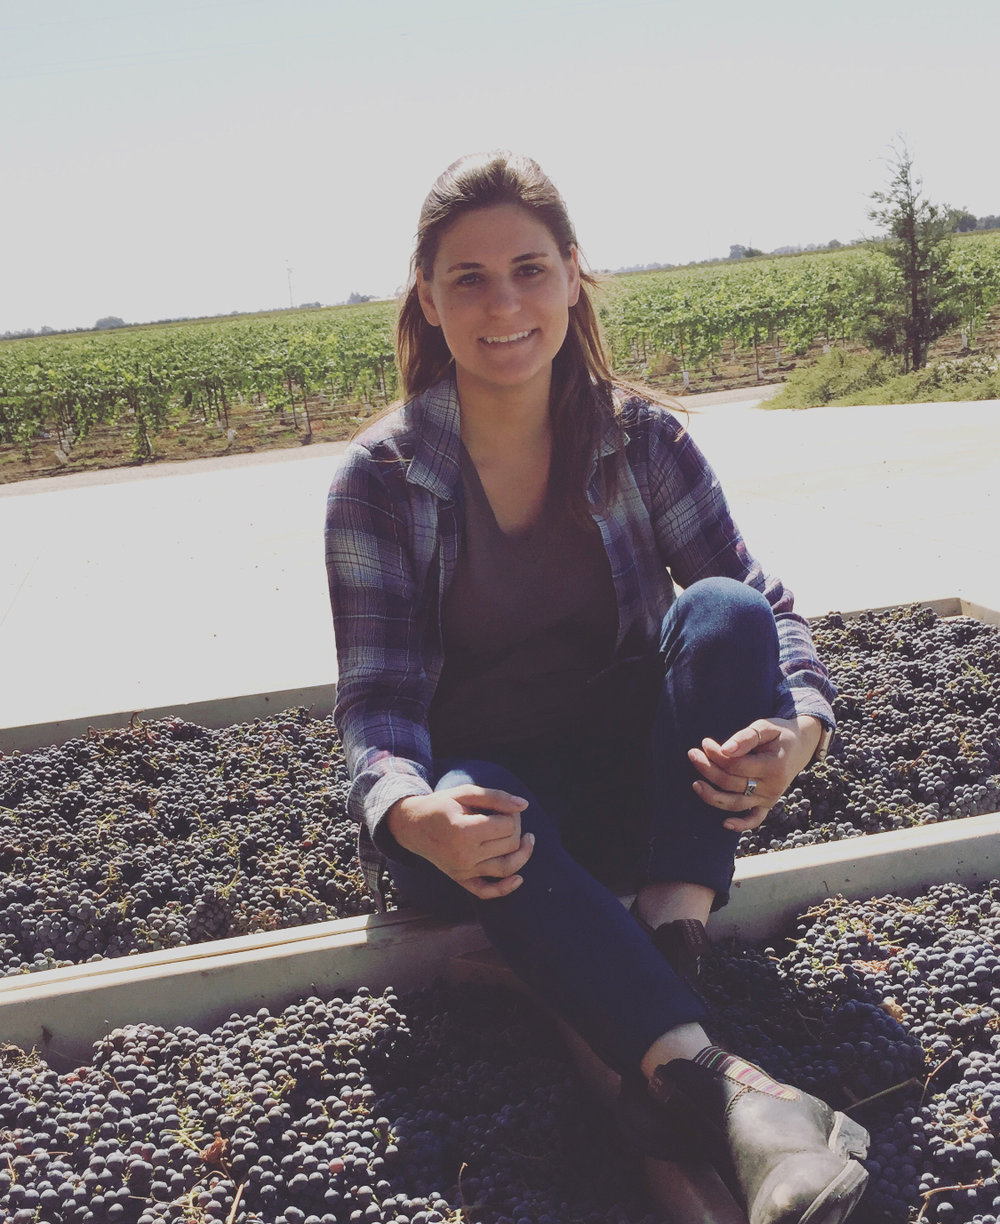 There is no winemaking without a good harvest, according to Sierra (Courtesy: Oak Farm Vineyards)